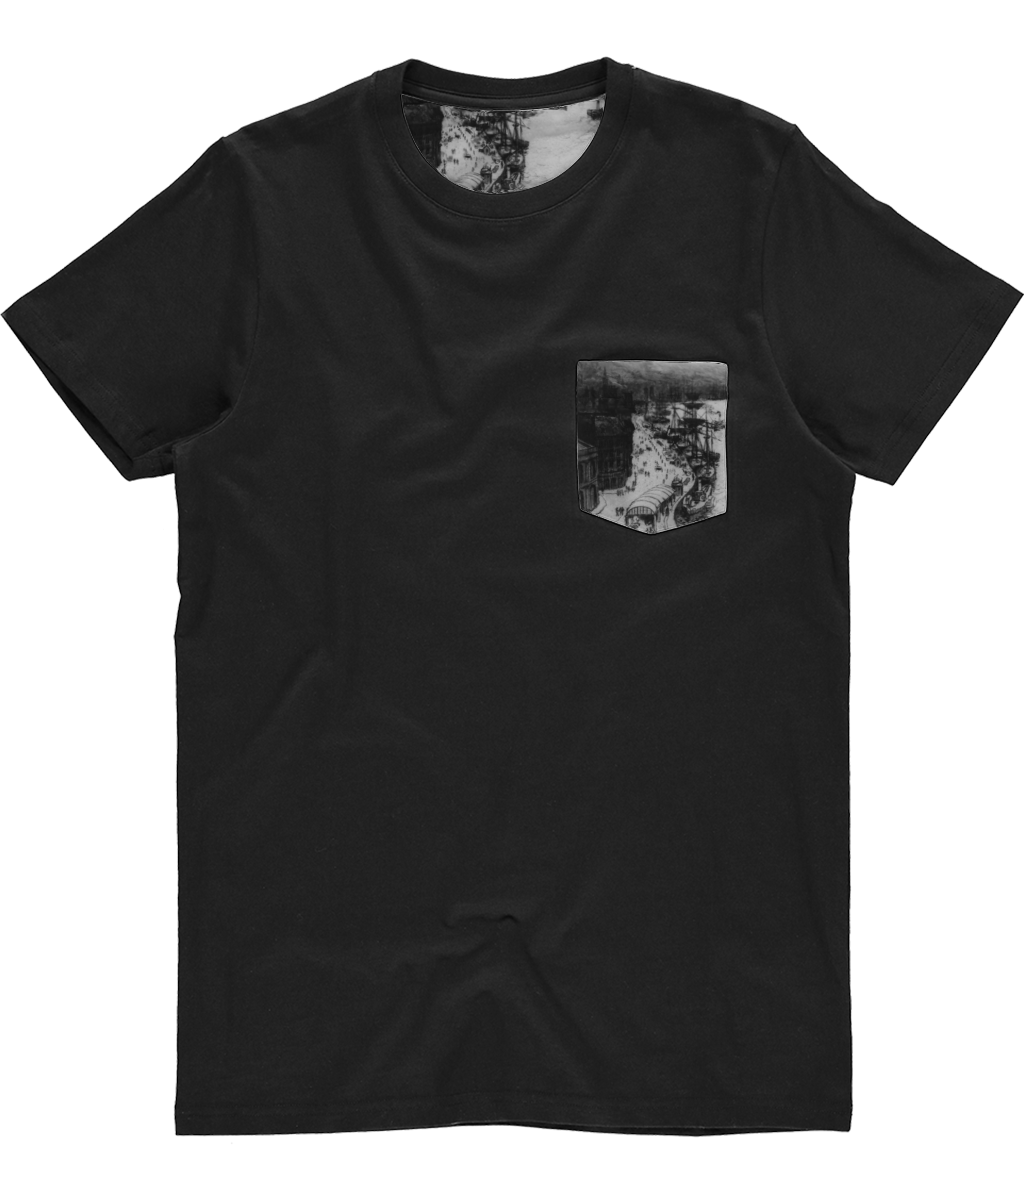 Newcastle Tyne Bridge sketch t-shirt